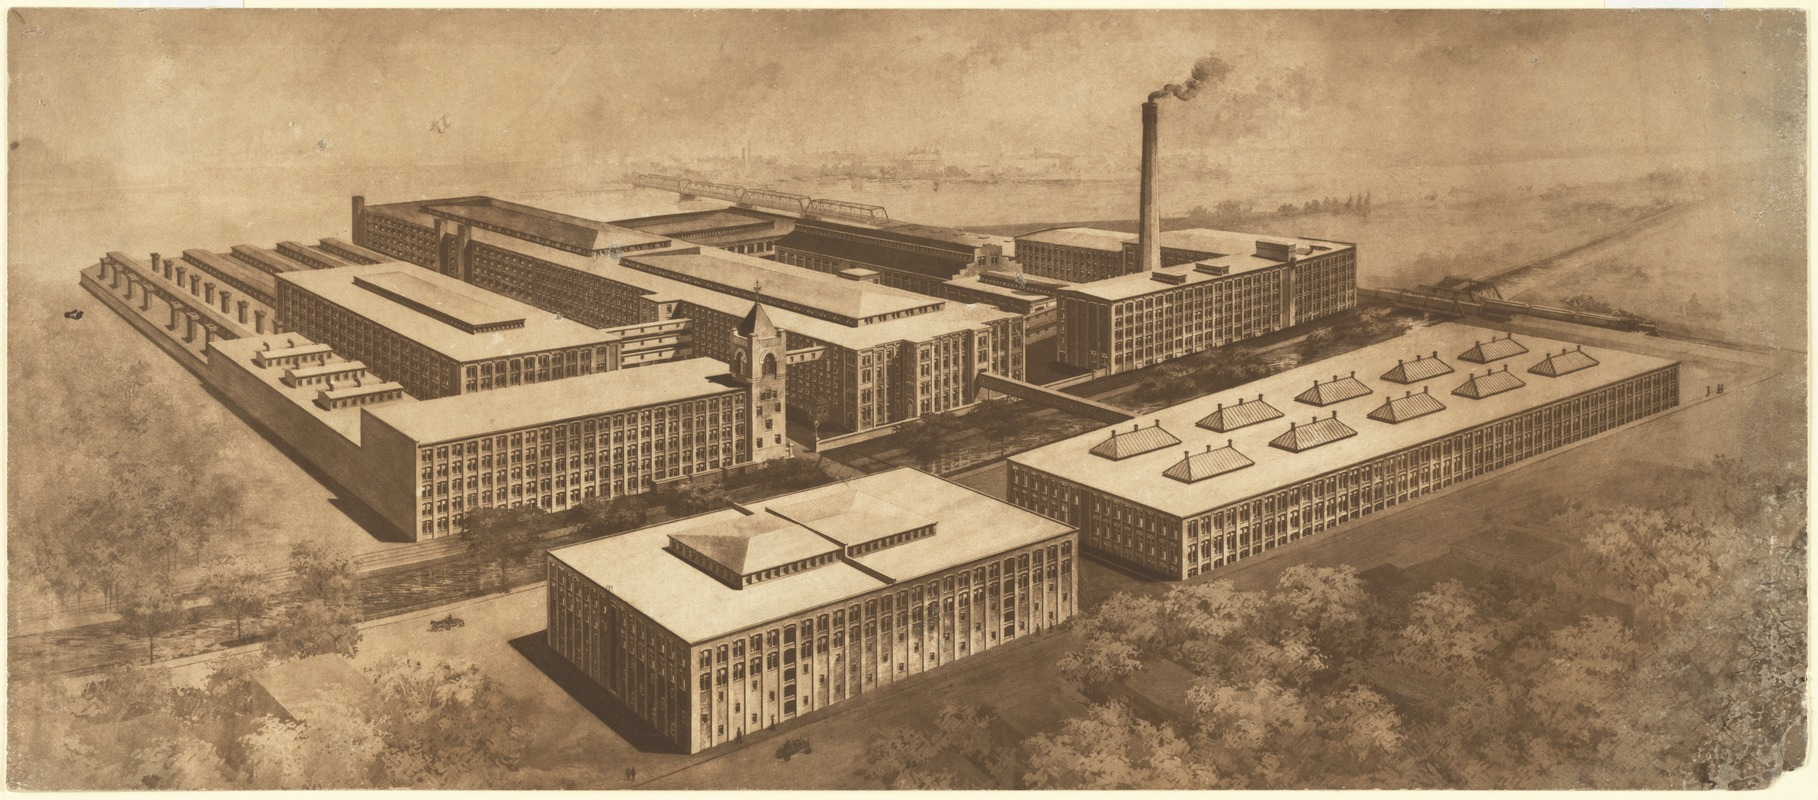 [Pacific Mills Worsted Department, Lawrence, Mass.] [graphic]